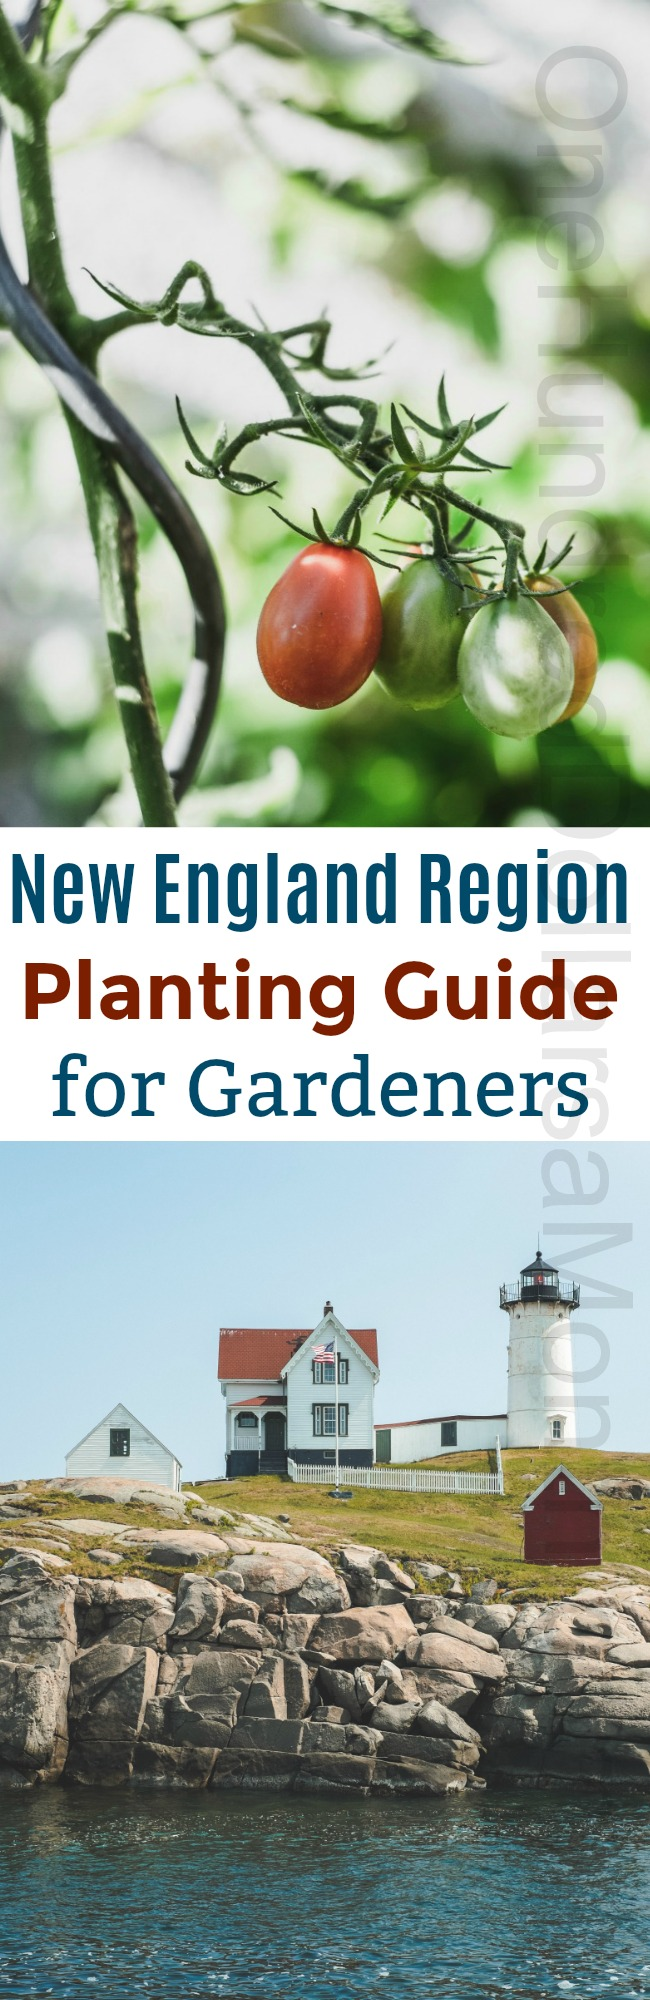 Maritime Canada and New England Region Grow Guide